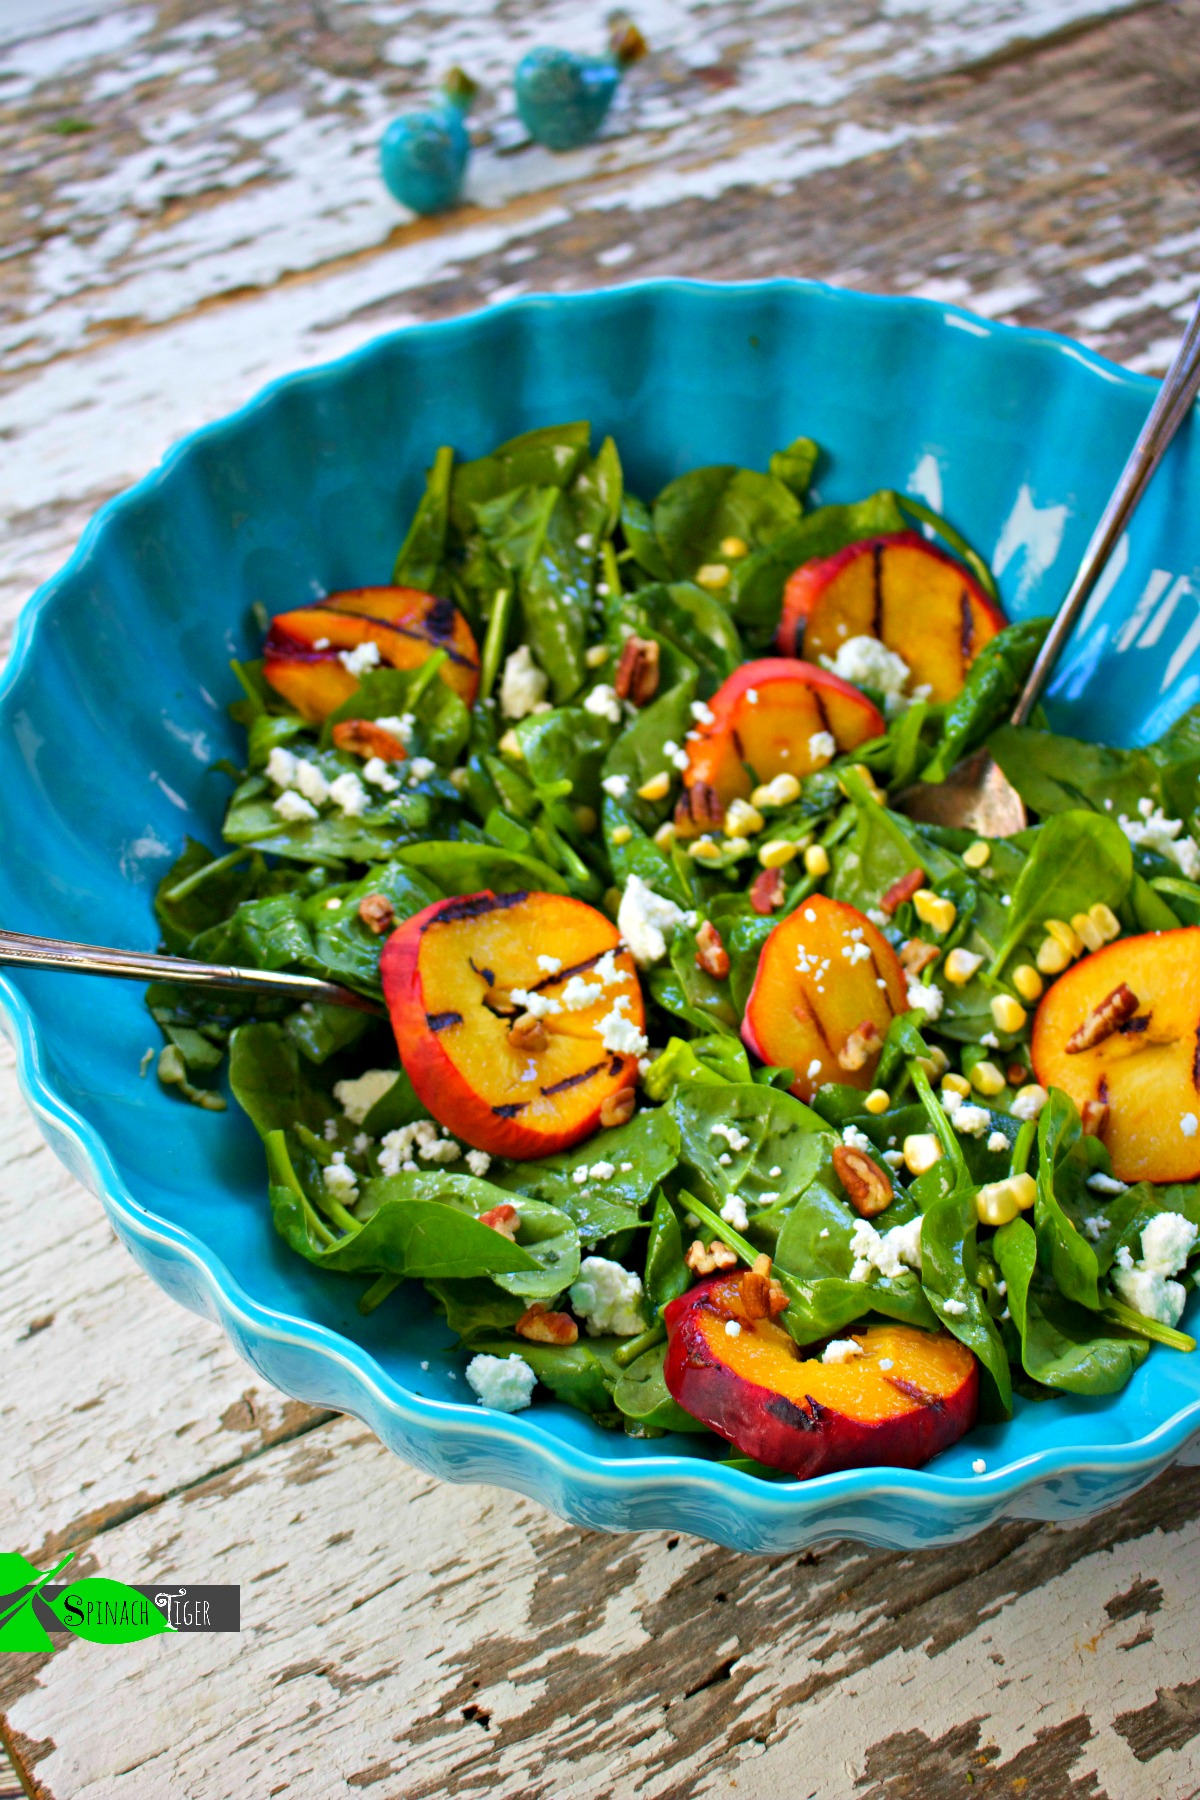 How to Make Peach Vinaigrette for Peach Spinach Salad from Spinach Tiger